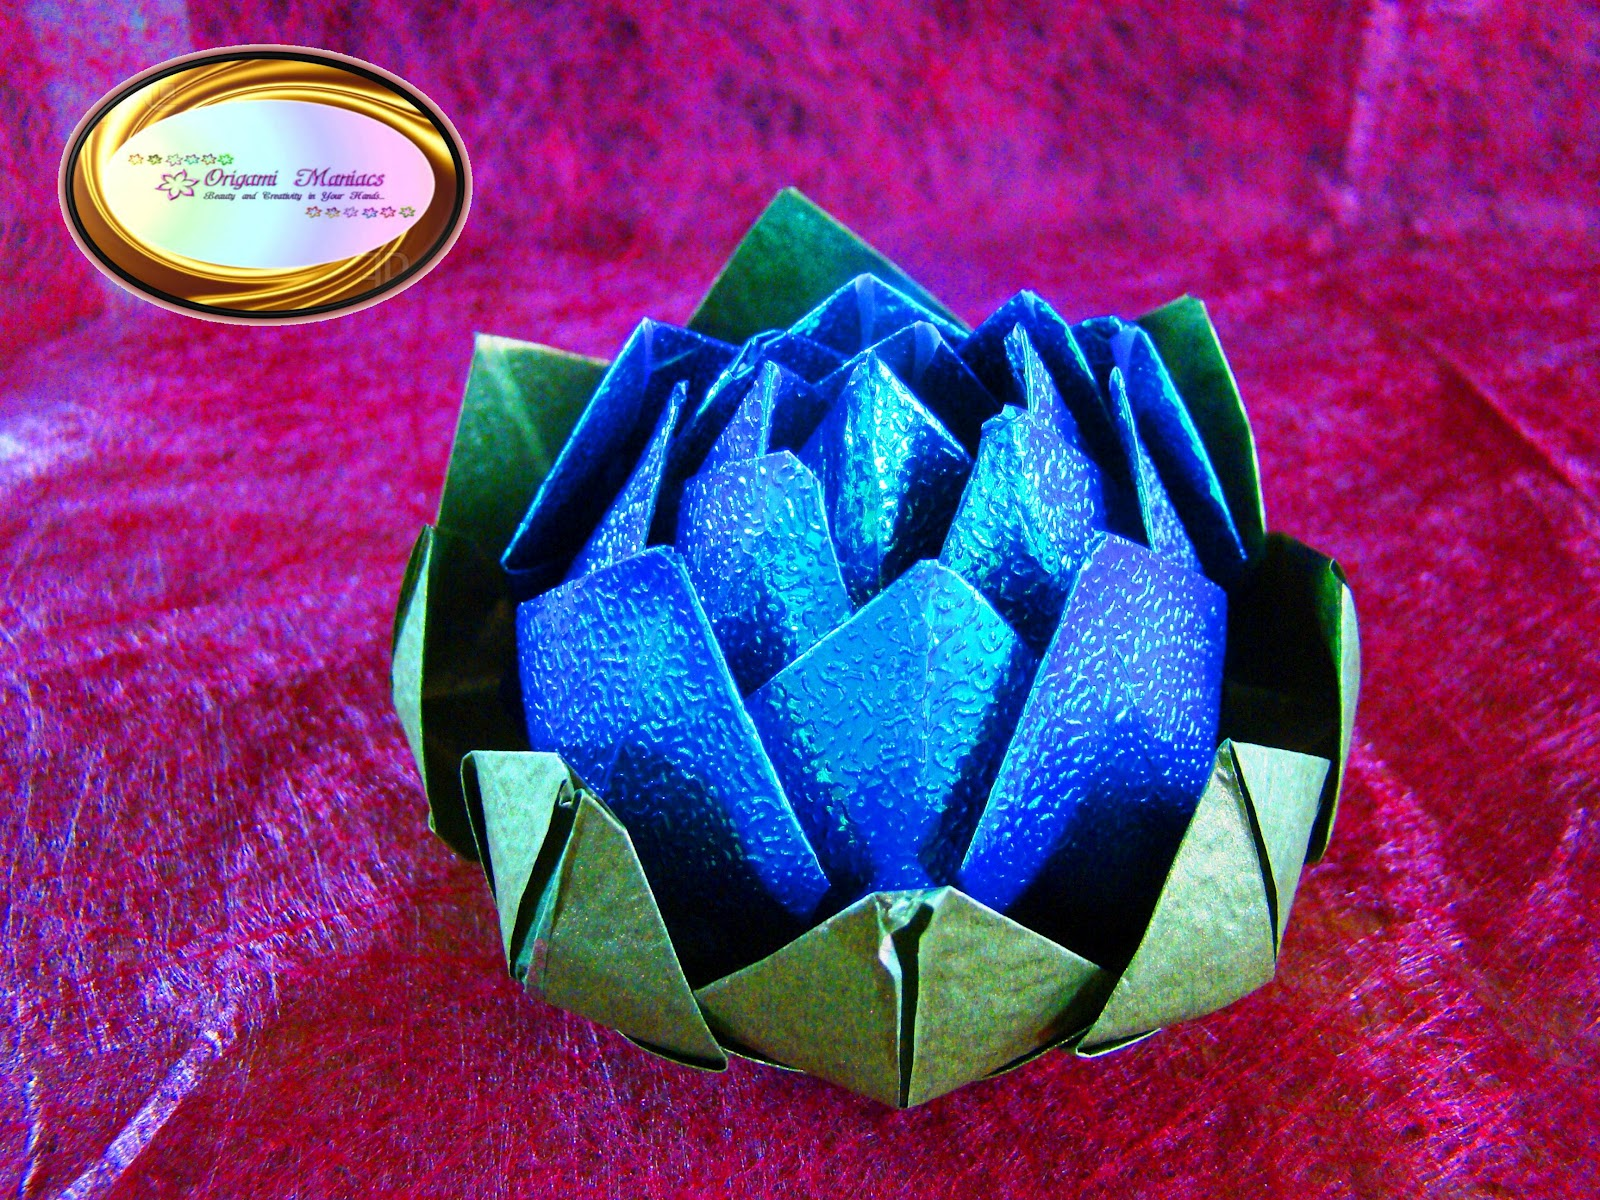 origami maniacs beautiful origami lotus flower